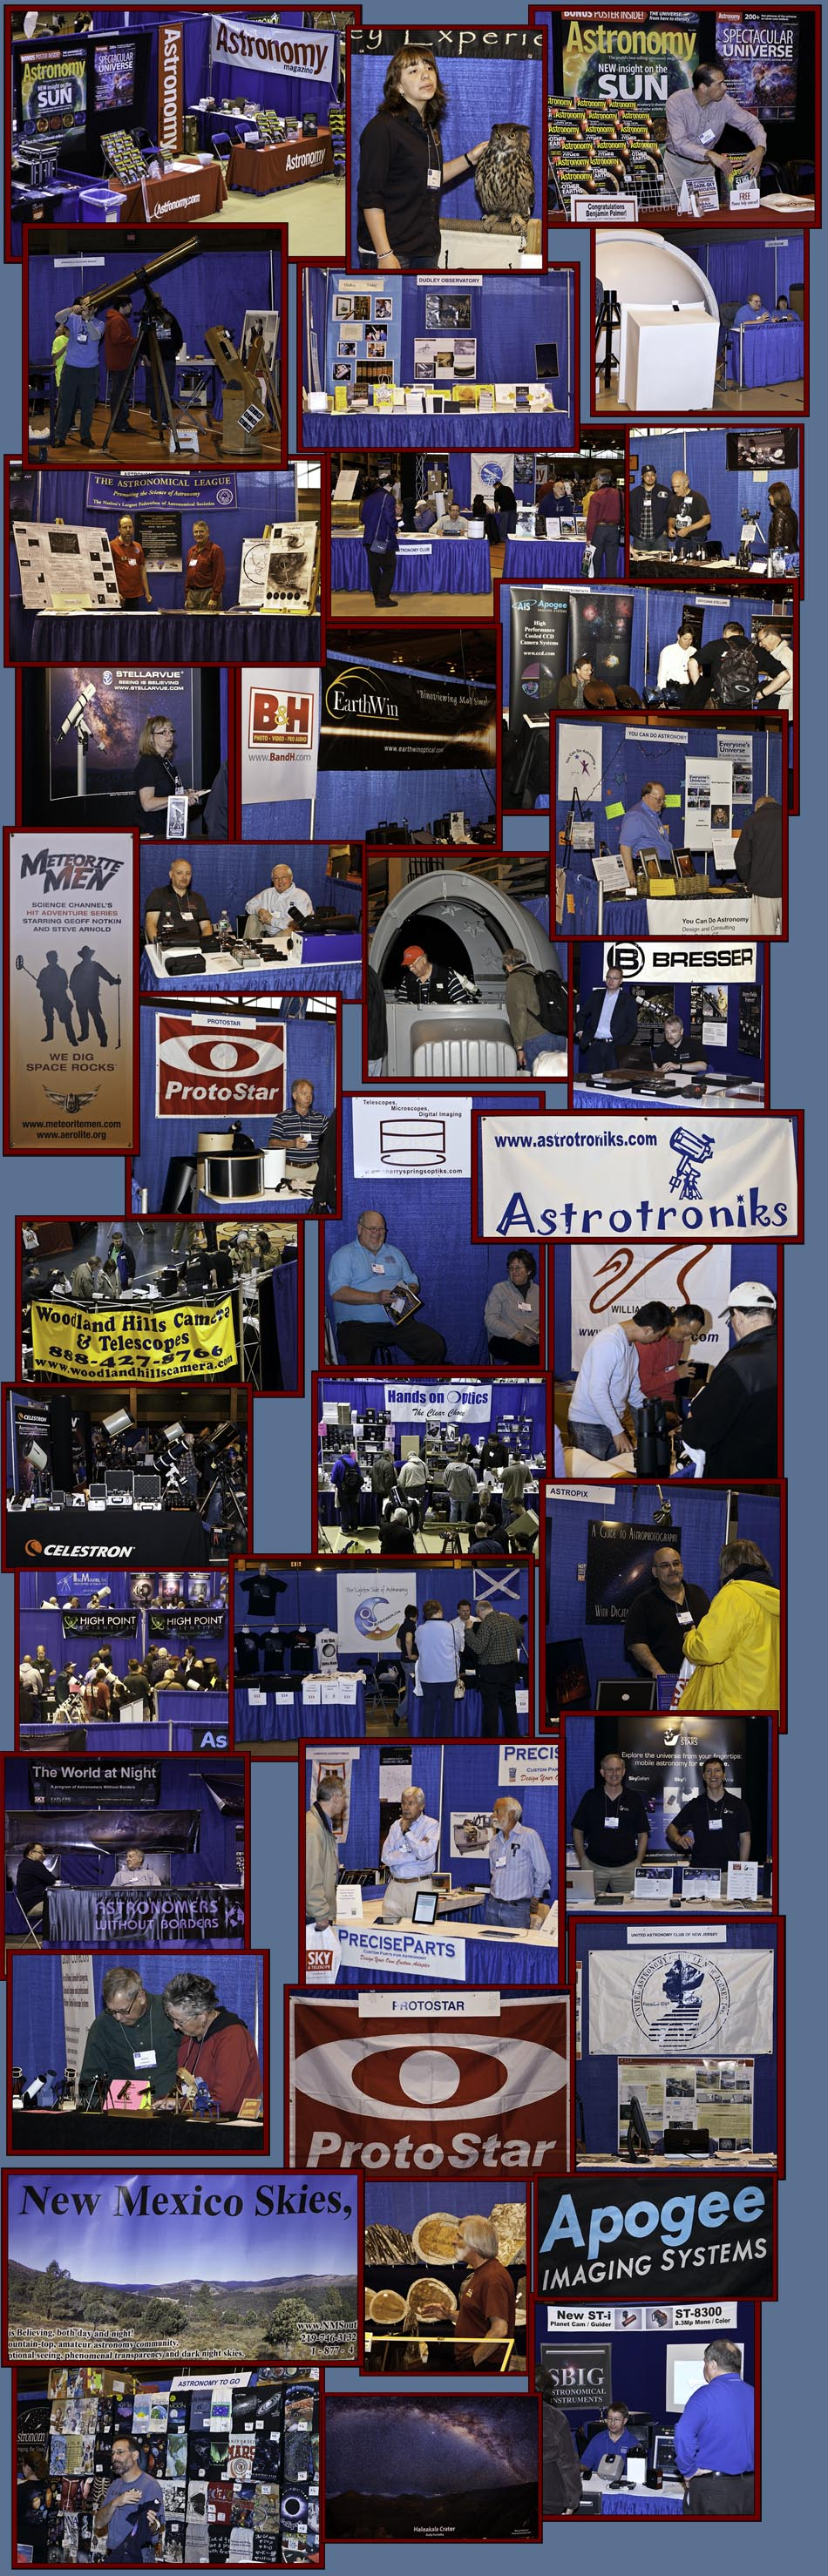 Exhibitors, Vendors and Products - NEAF 2011